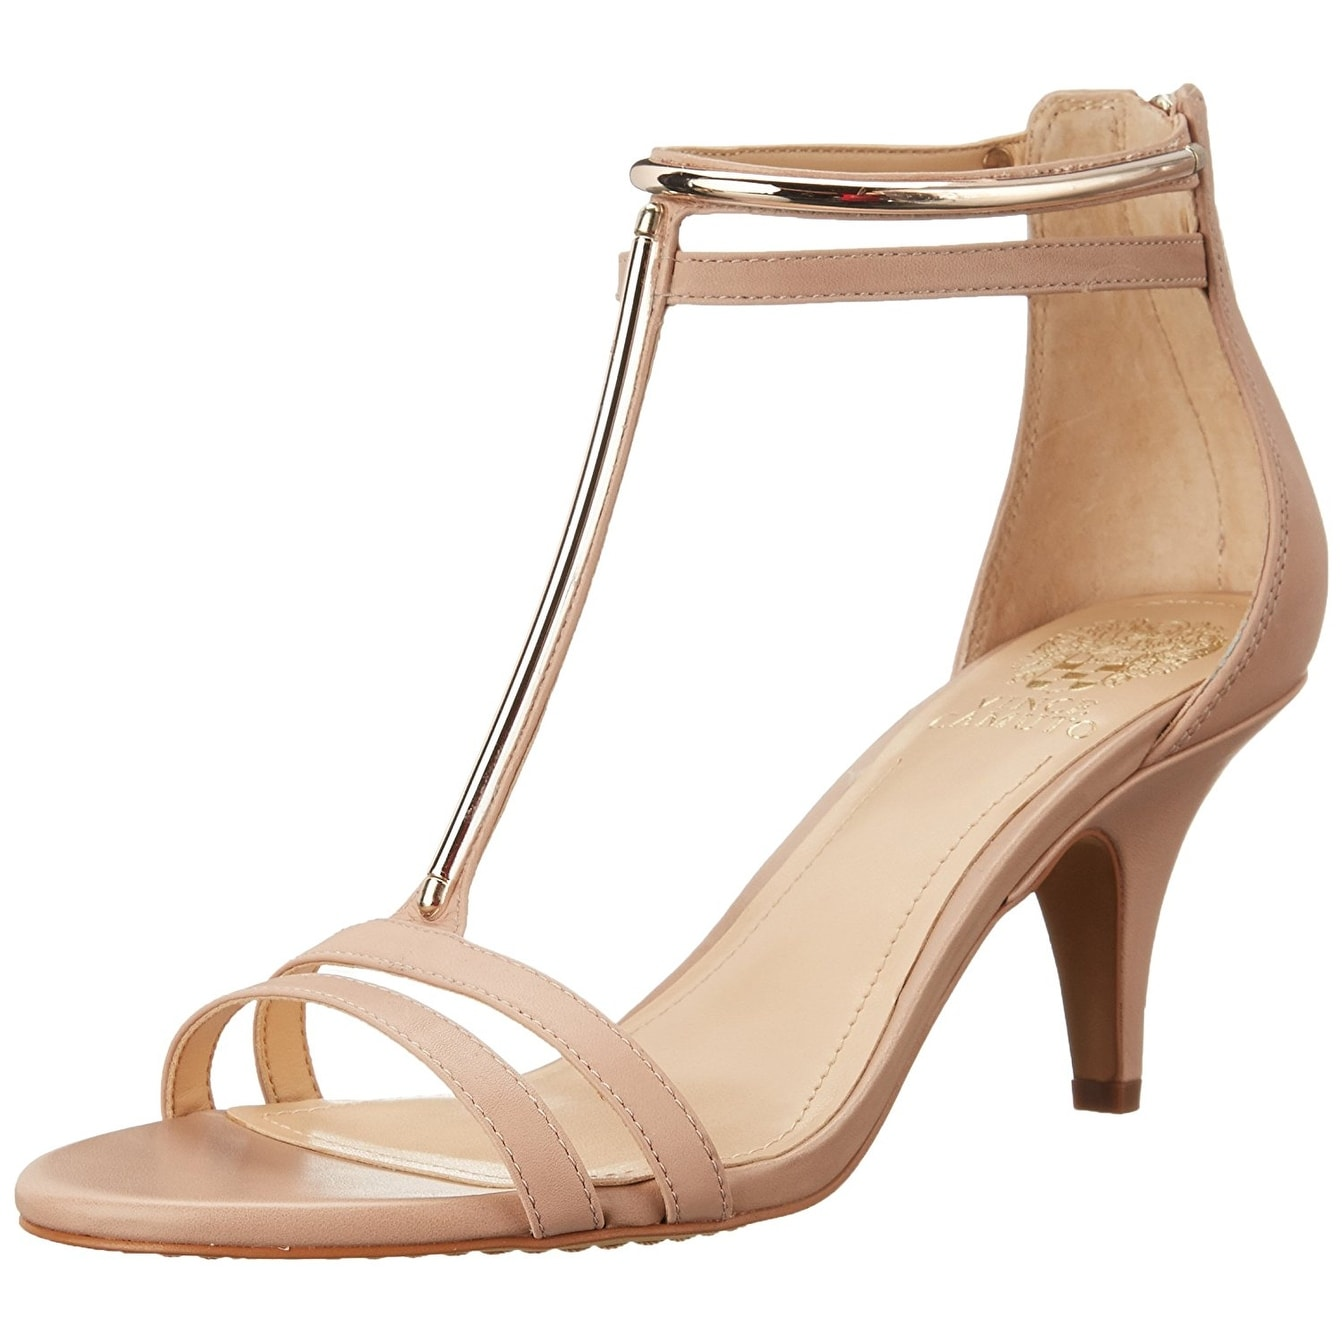 67f5c4e3a5f9 Shop Vince Camuto Womens Mitzy Leather Open Toe Special Occasion T-Strap  Sandals - Free Shipping Today - Overstock - 15026206